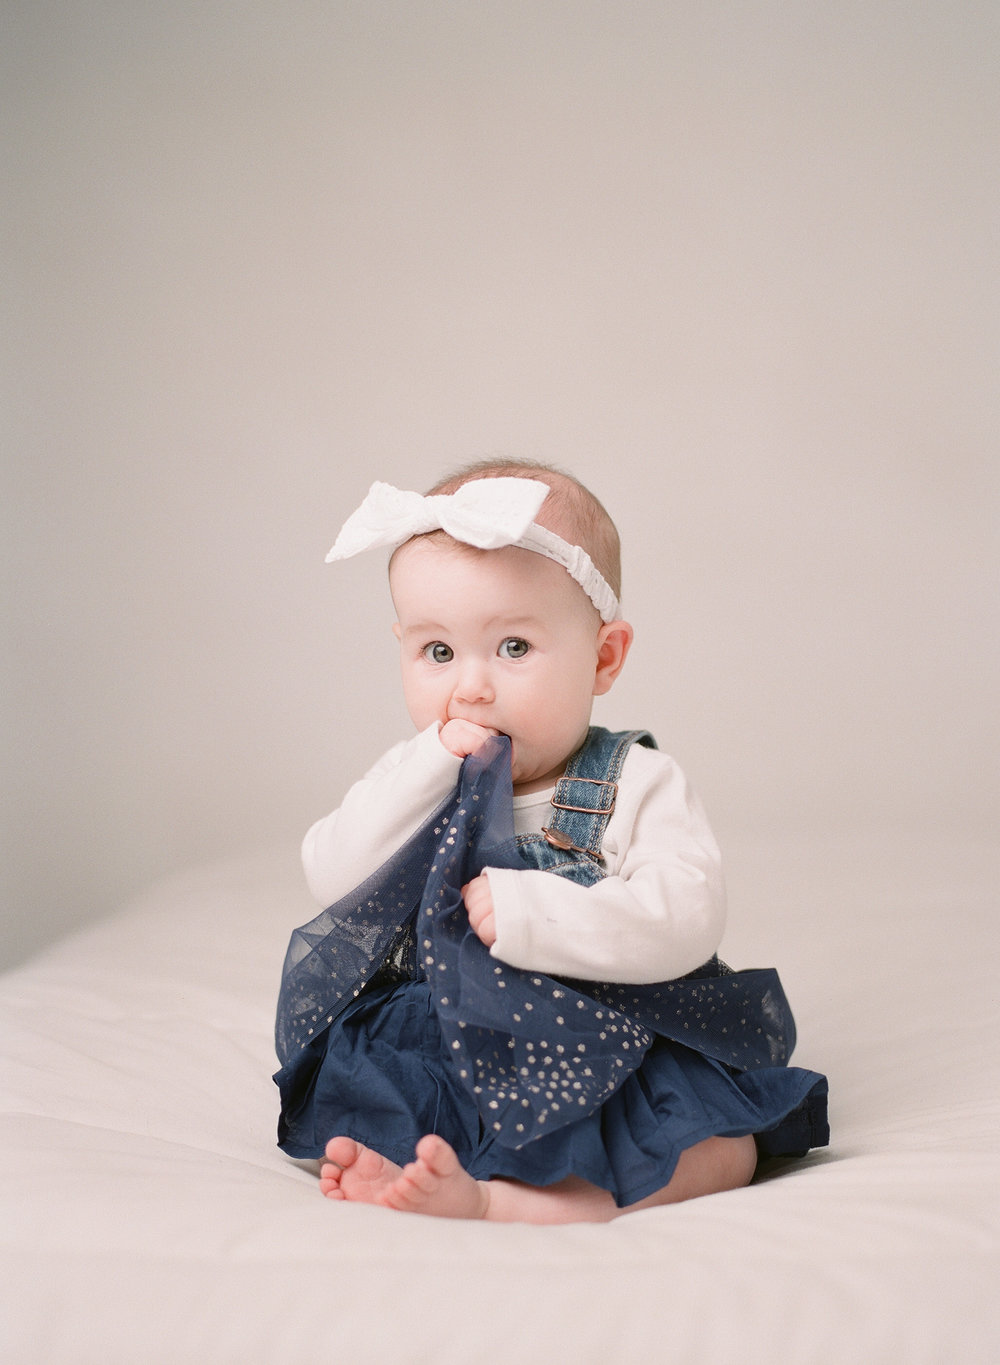 seattle studio photographer what to wear family photography how to dress your kids | sandra coan photography